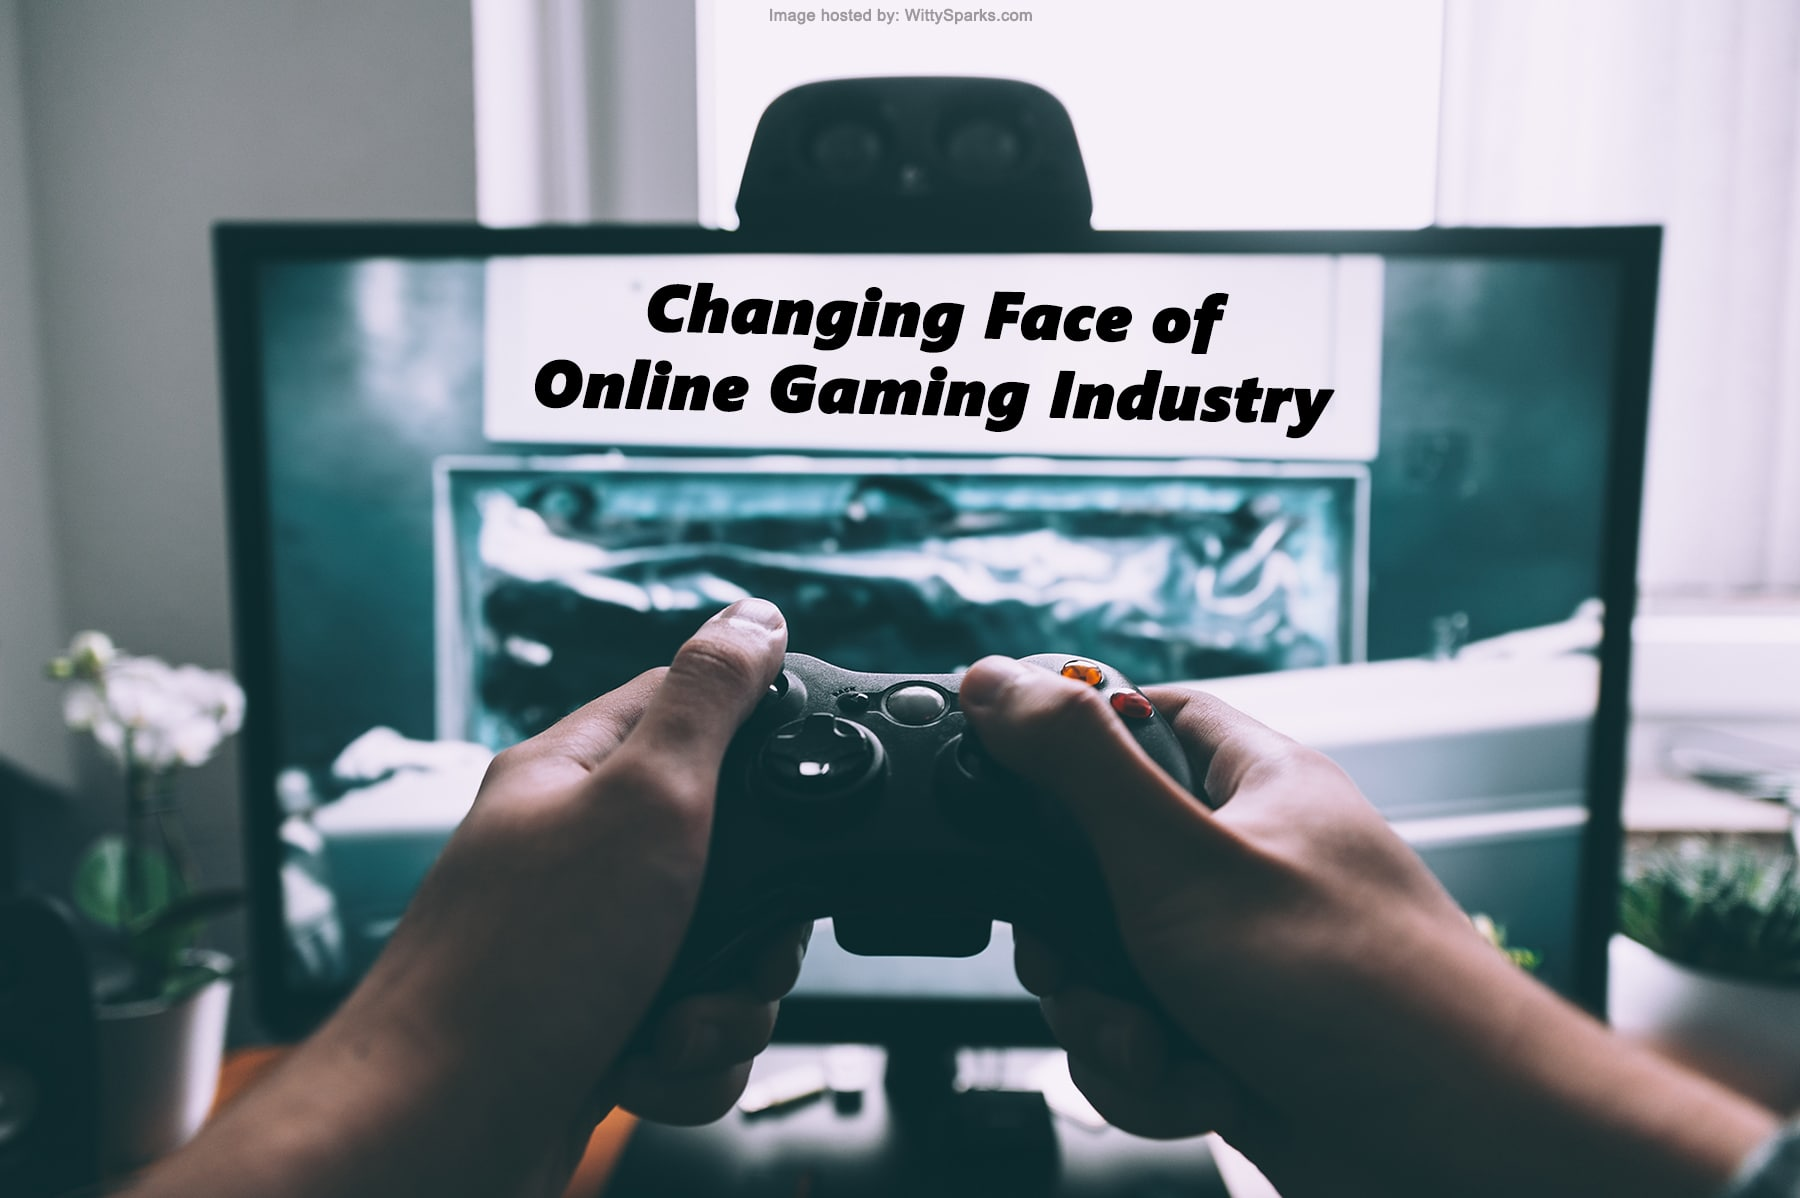 Changing Face of Online Gaming Industry